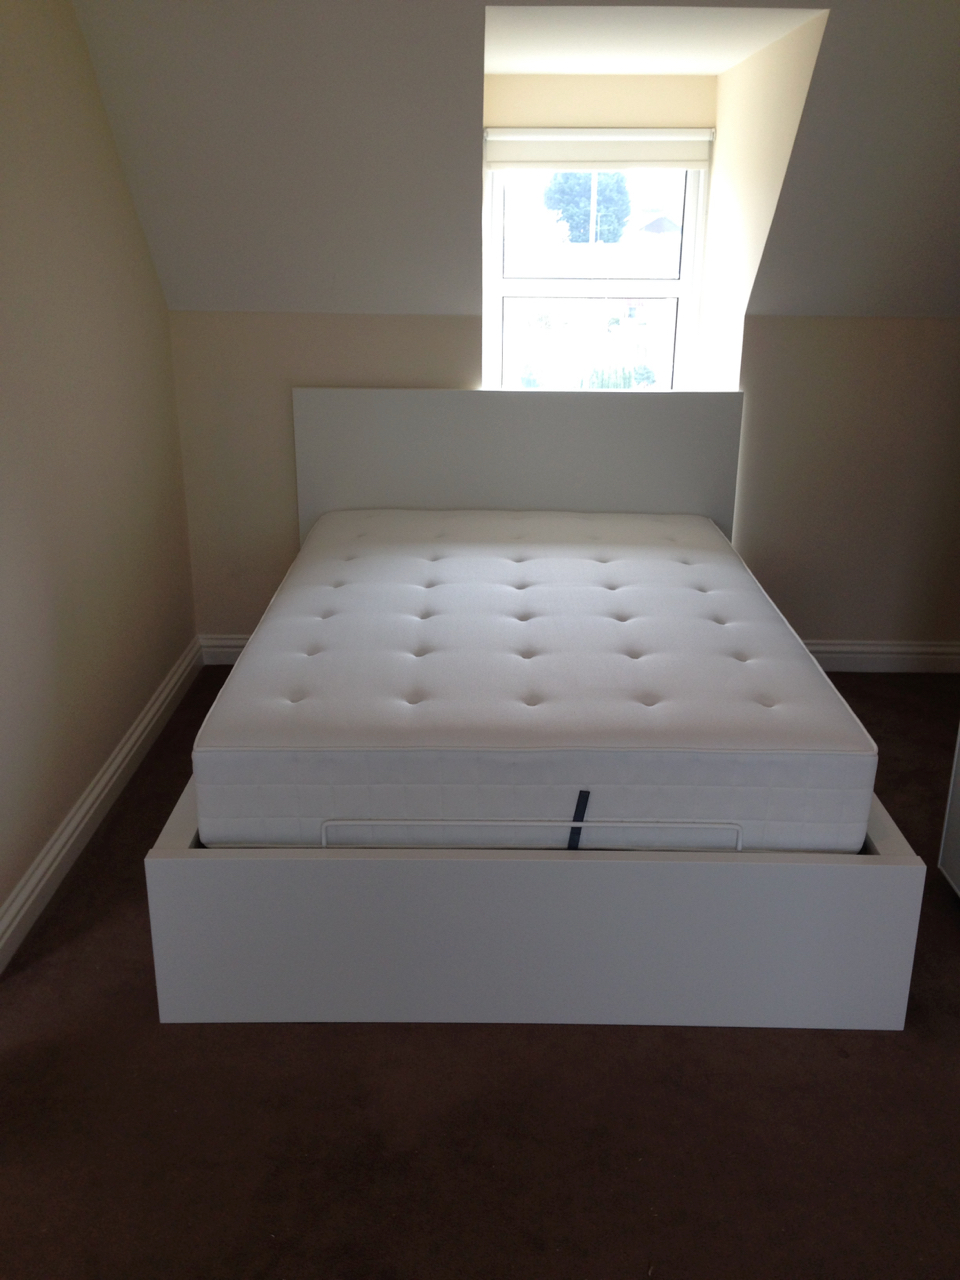 Ikea MALM ottoman bed assembled by www.norwichflatpack.co.uk